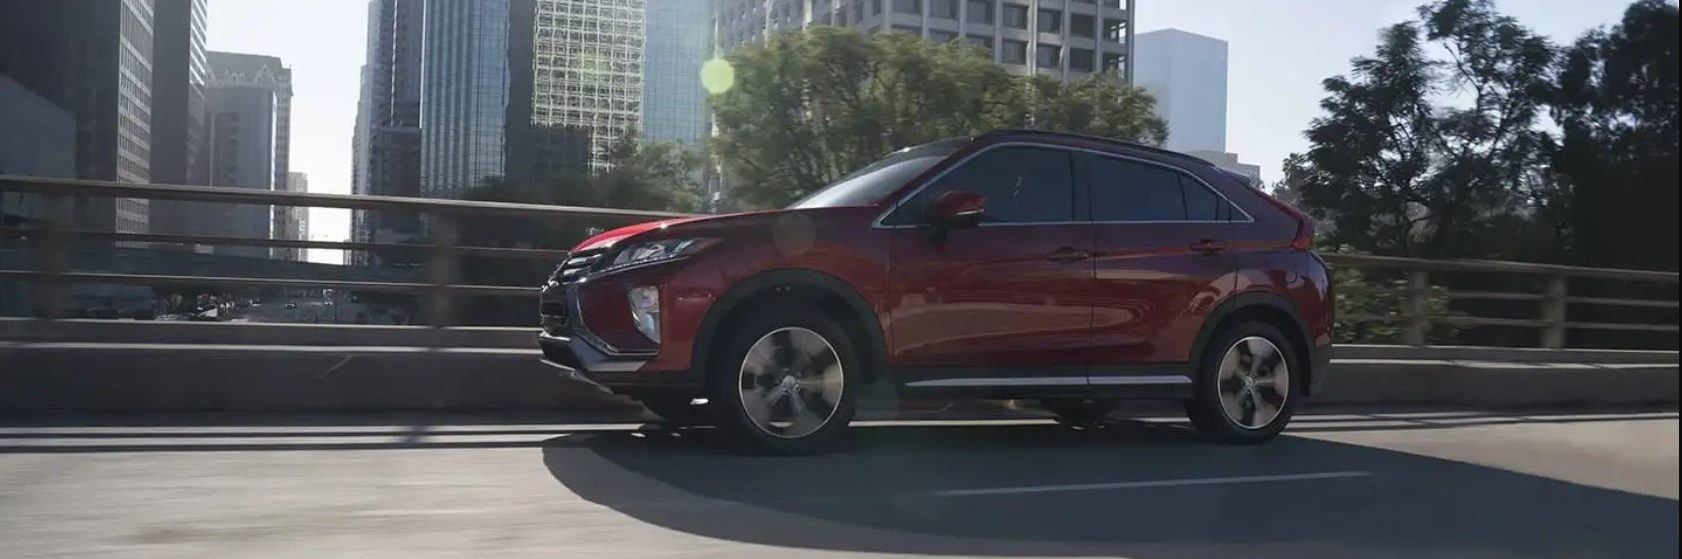 A red 2019 Mitsubishi Eclipse Cross